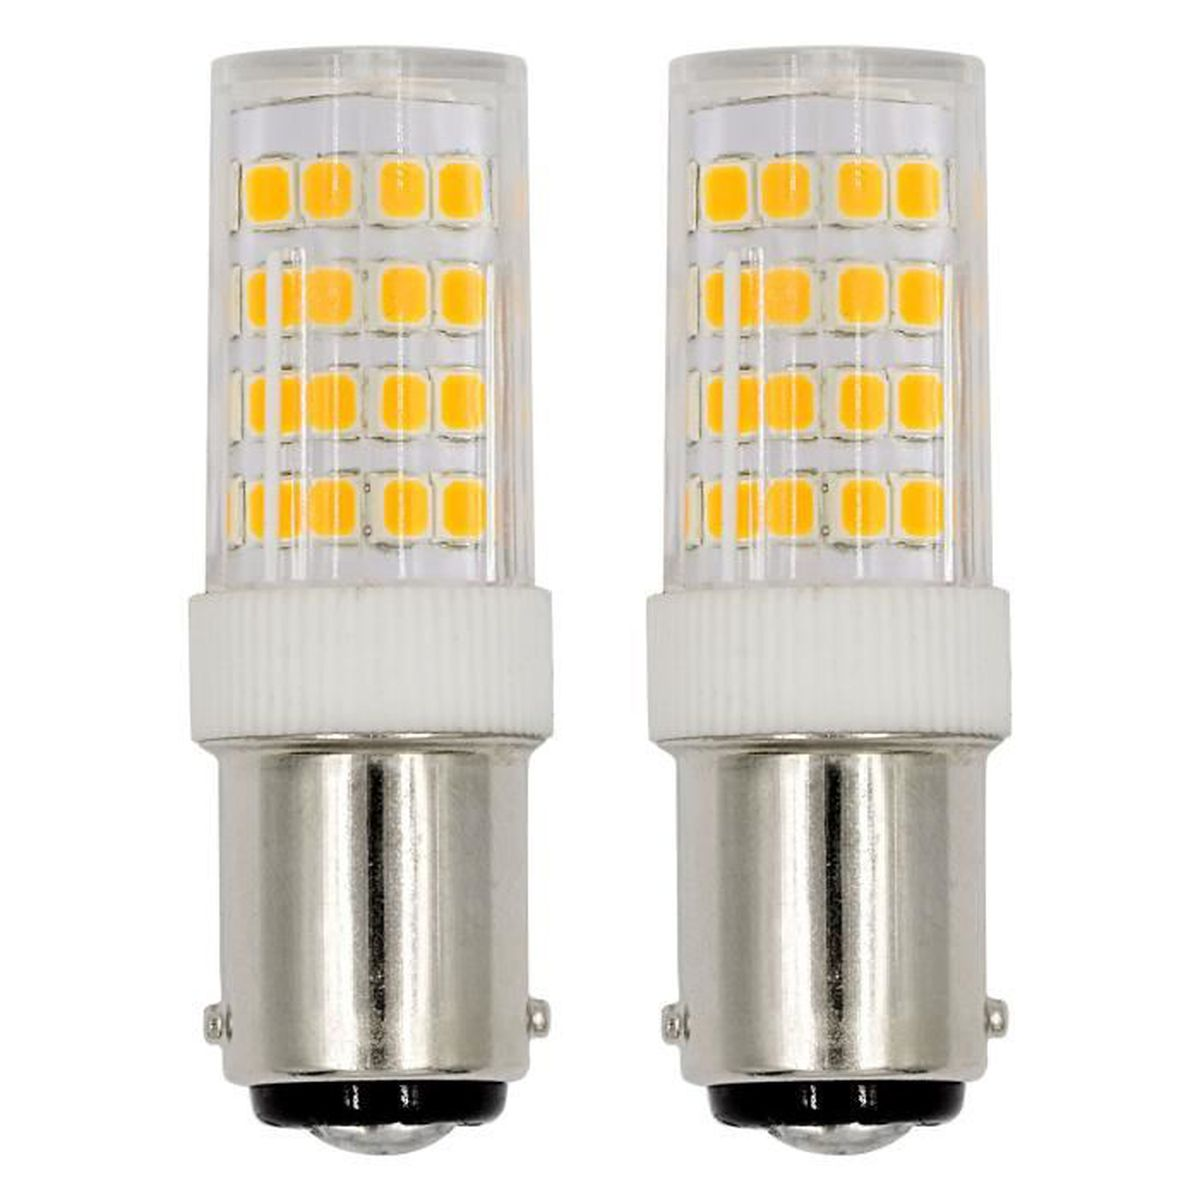 220 B15d Smd 52x2835 2pcs 240v Led Froid 5w Ac Mengs® Ampoule Blanc 2DYWHE9I